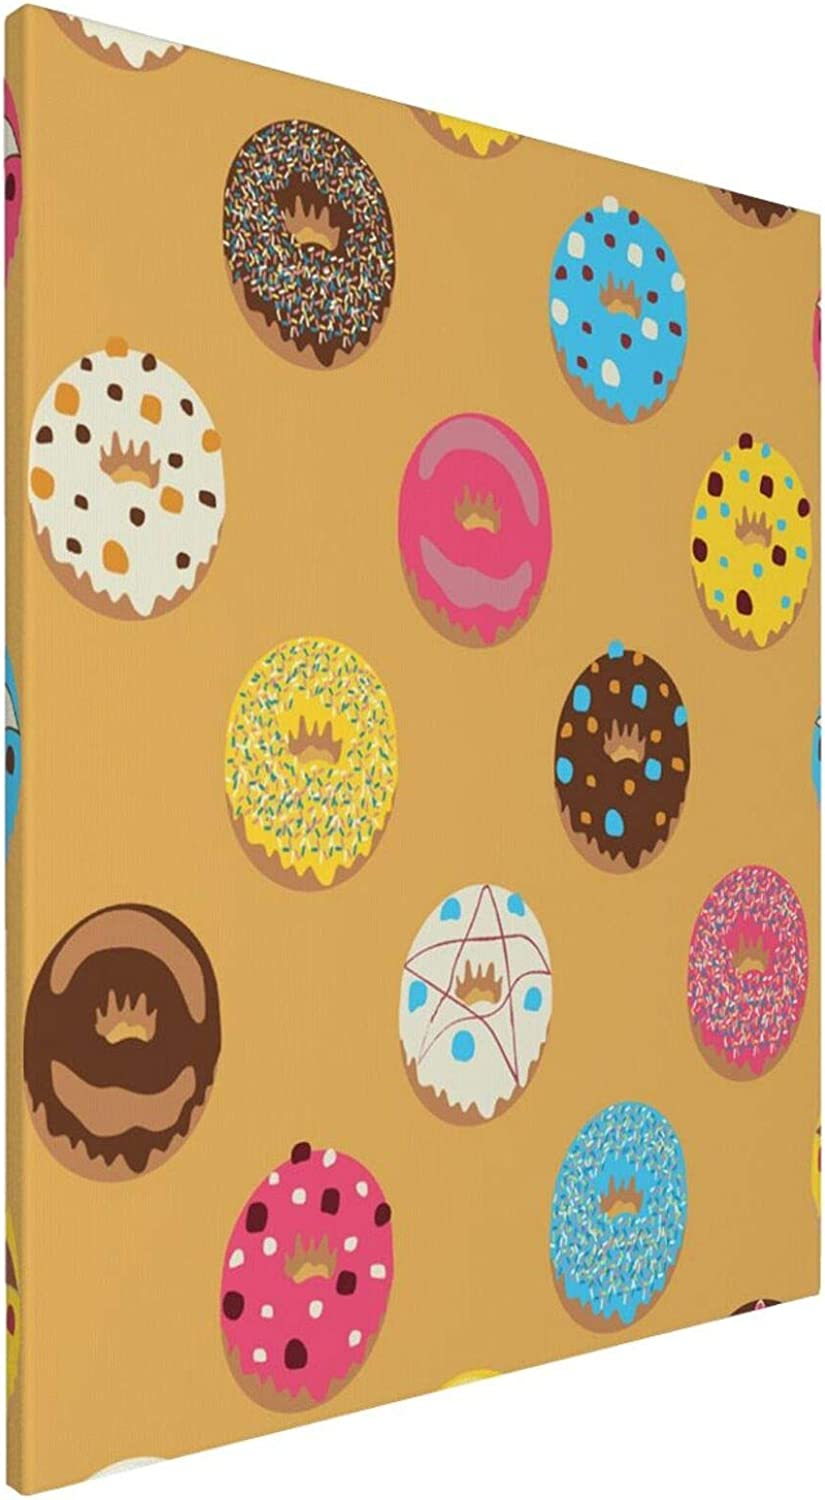 Chocolate Donuts Cartoon Cute Funny Food Painting on Canvas Lover Rain Street Tree Lamp Texture Palette Knife Abstract Landscape Art Paintings Canvas Wall Art Modern House